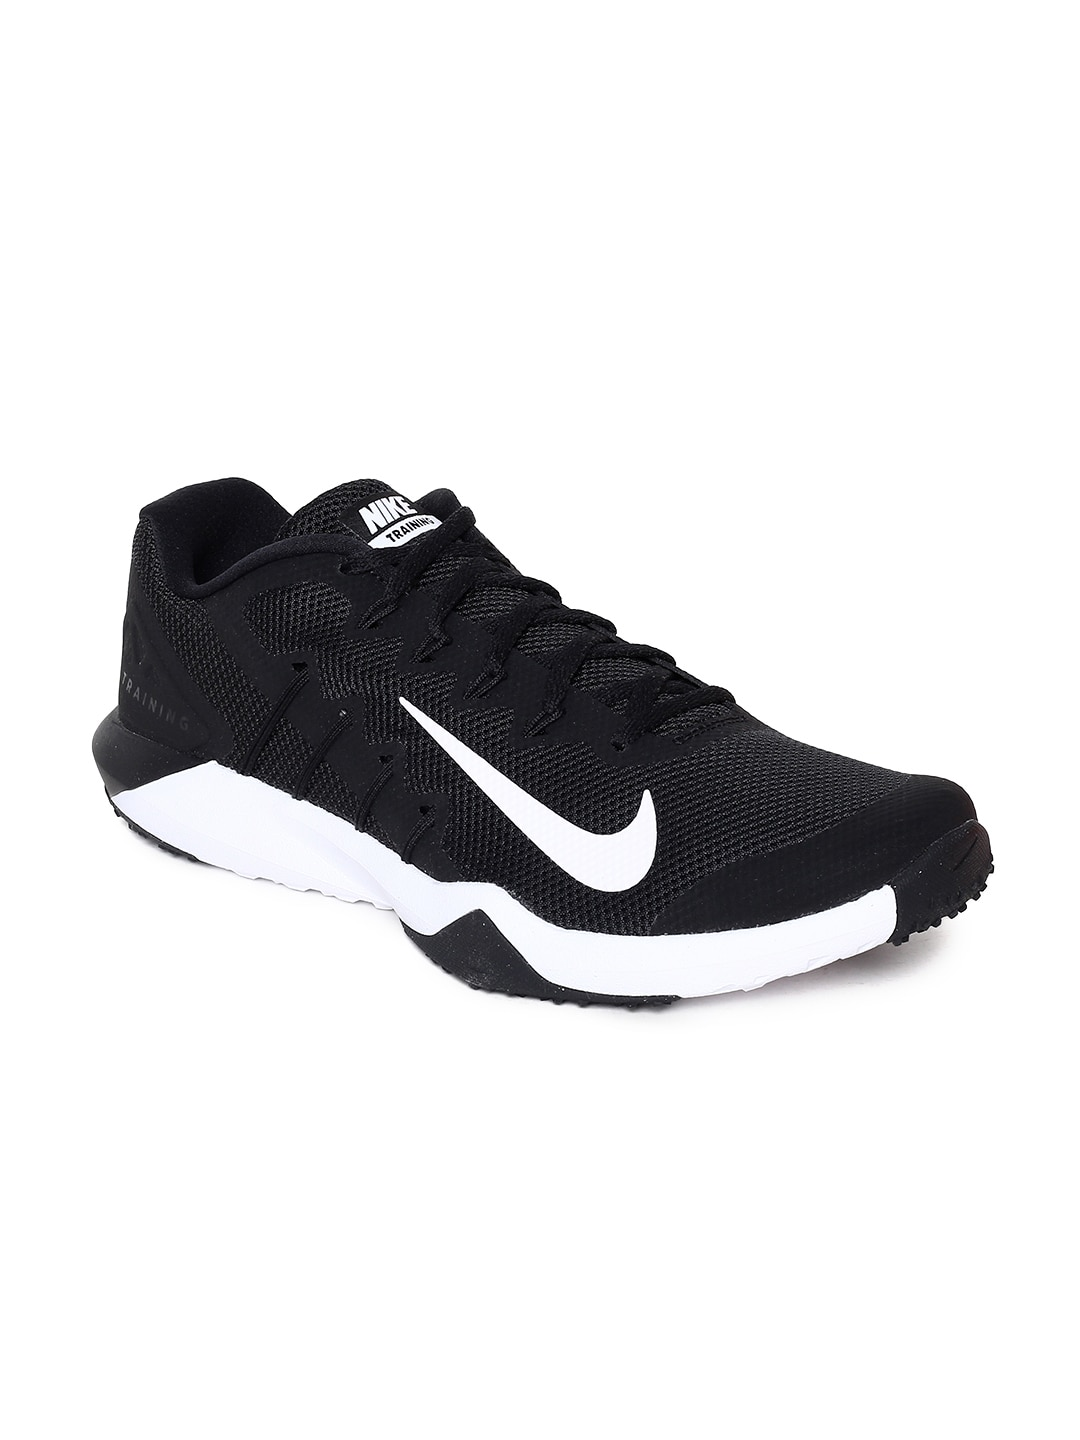 7d583f42dfc09 Nike Training Shoes - Buy Nike Training Shoes For Men   Women in India